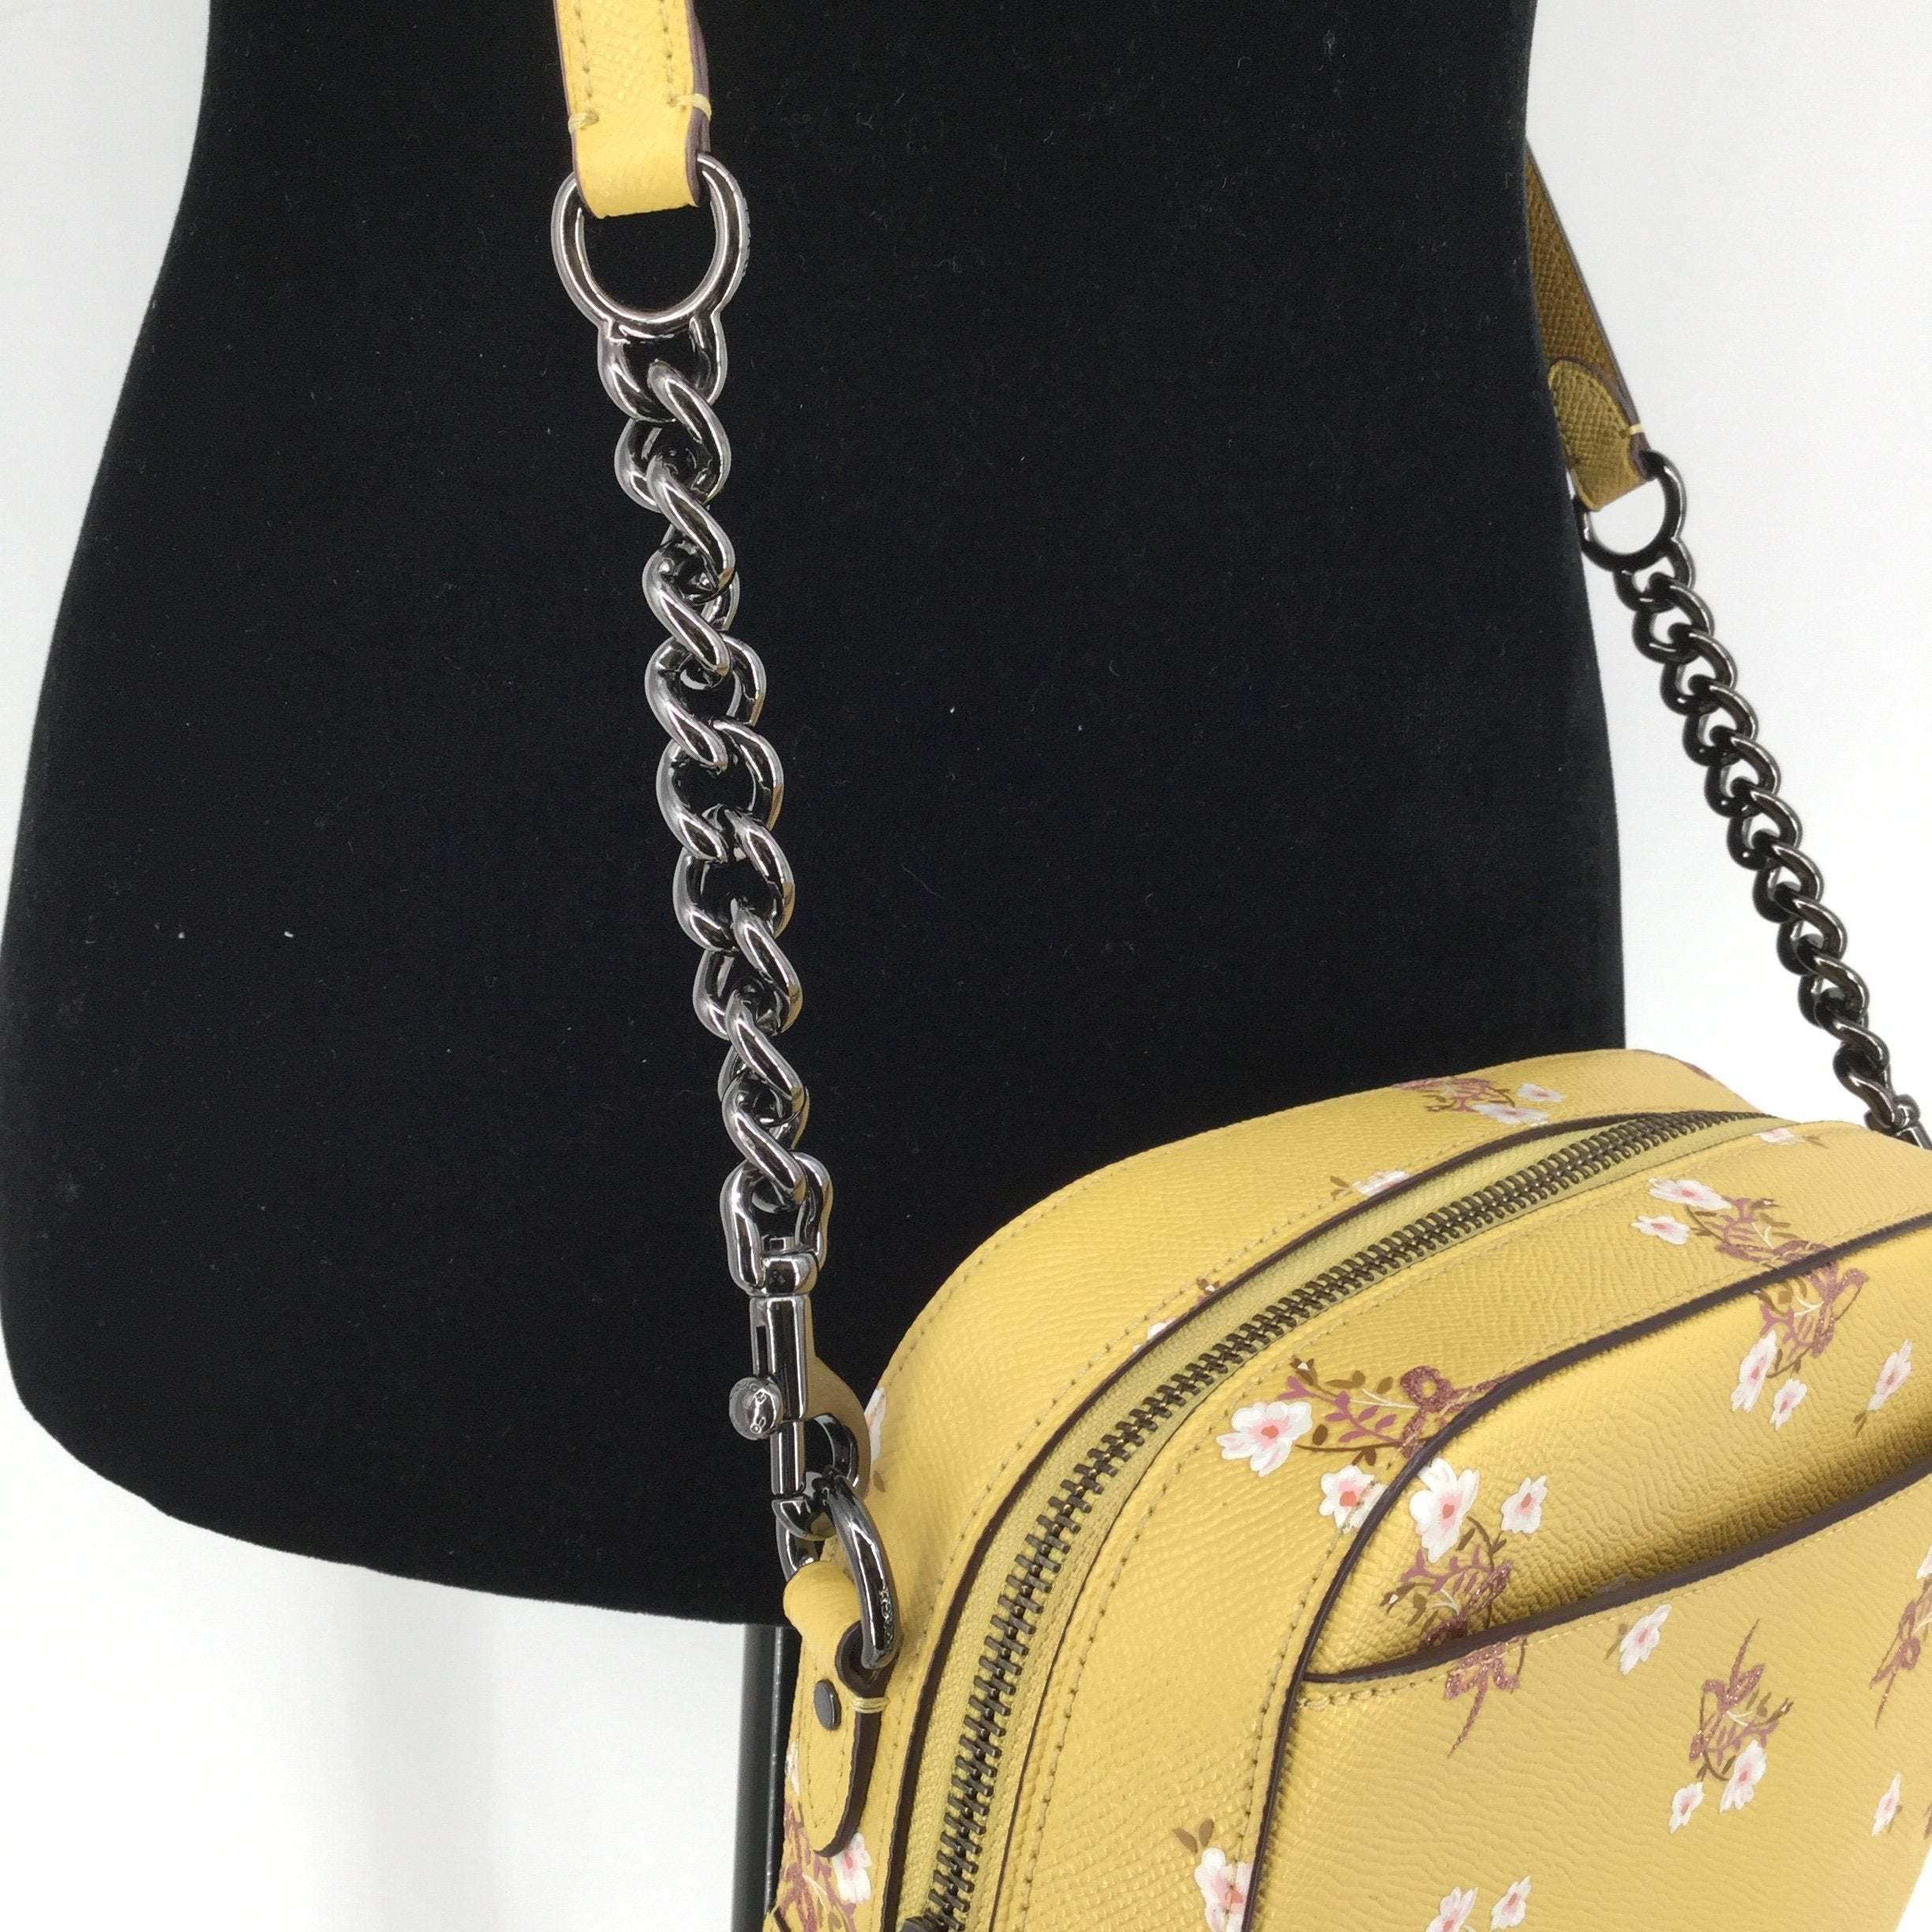 Coach Yellow Leather Designer Handbag - <P>THIS COACH IS THE PERFECT SPRING BAG! IT IS YELLOW WITH A FLORAL PATTERN. THERE IS A SLIP POCKET ON THE FRONT AND THE BACK. THE CROSSBODY STRAP IS REMOVABLE. INSIDE, THERE IS A SLIP POCKET AND A ZIPPER POCKET. THERE IS A SLEEPER BAG INCLUDED! THIS BAG IS GENTLY USED WITH SOME MINOR WEAR ON THE BACK (SEE PHOTOS).</P>